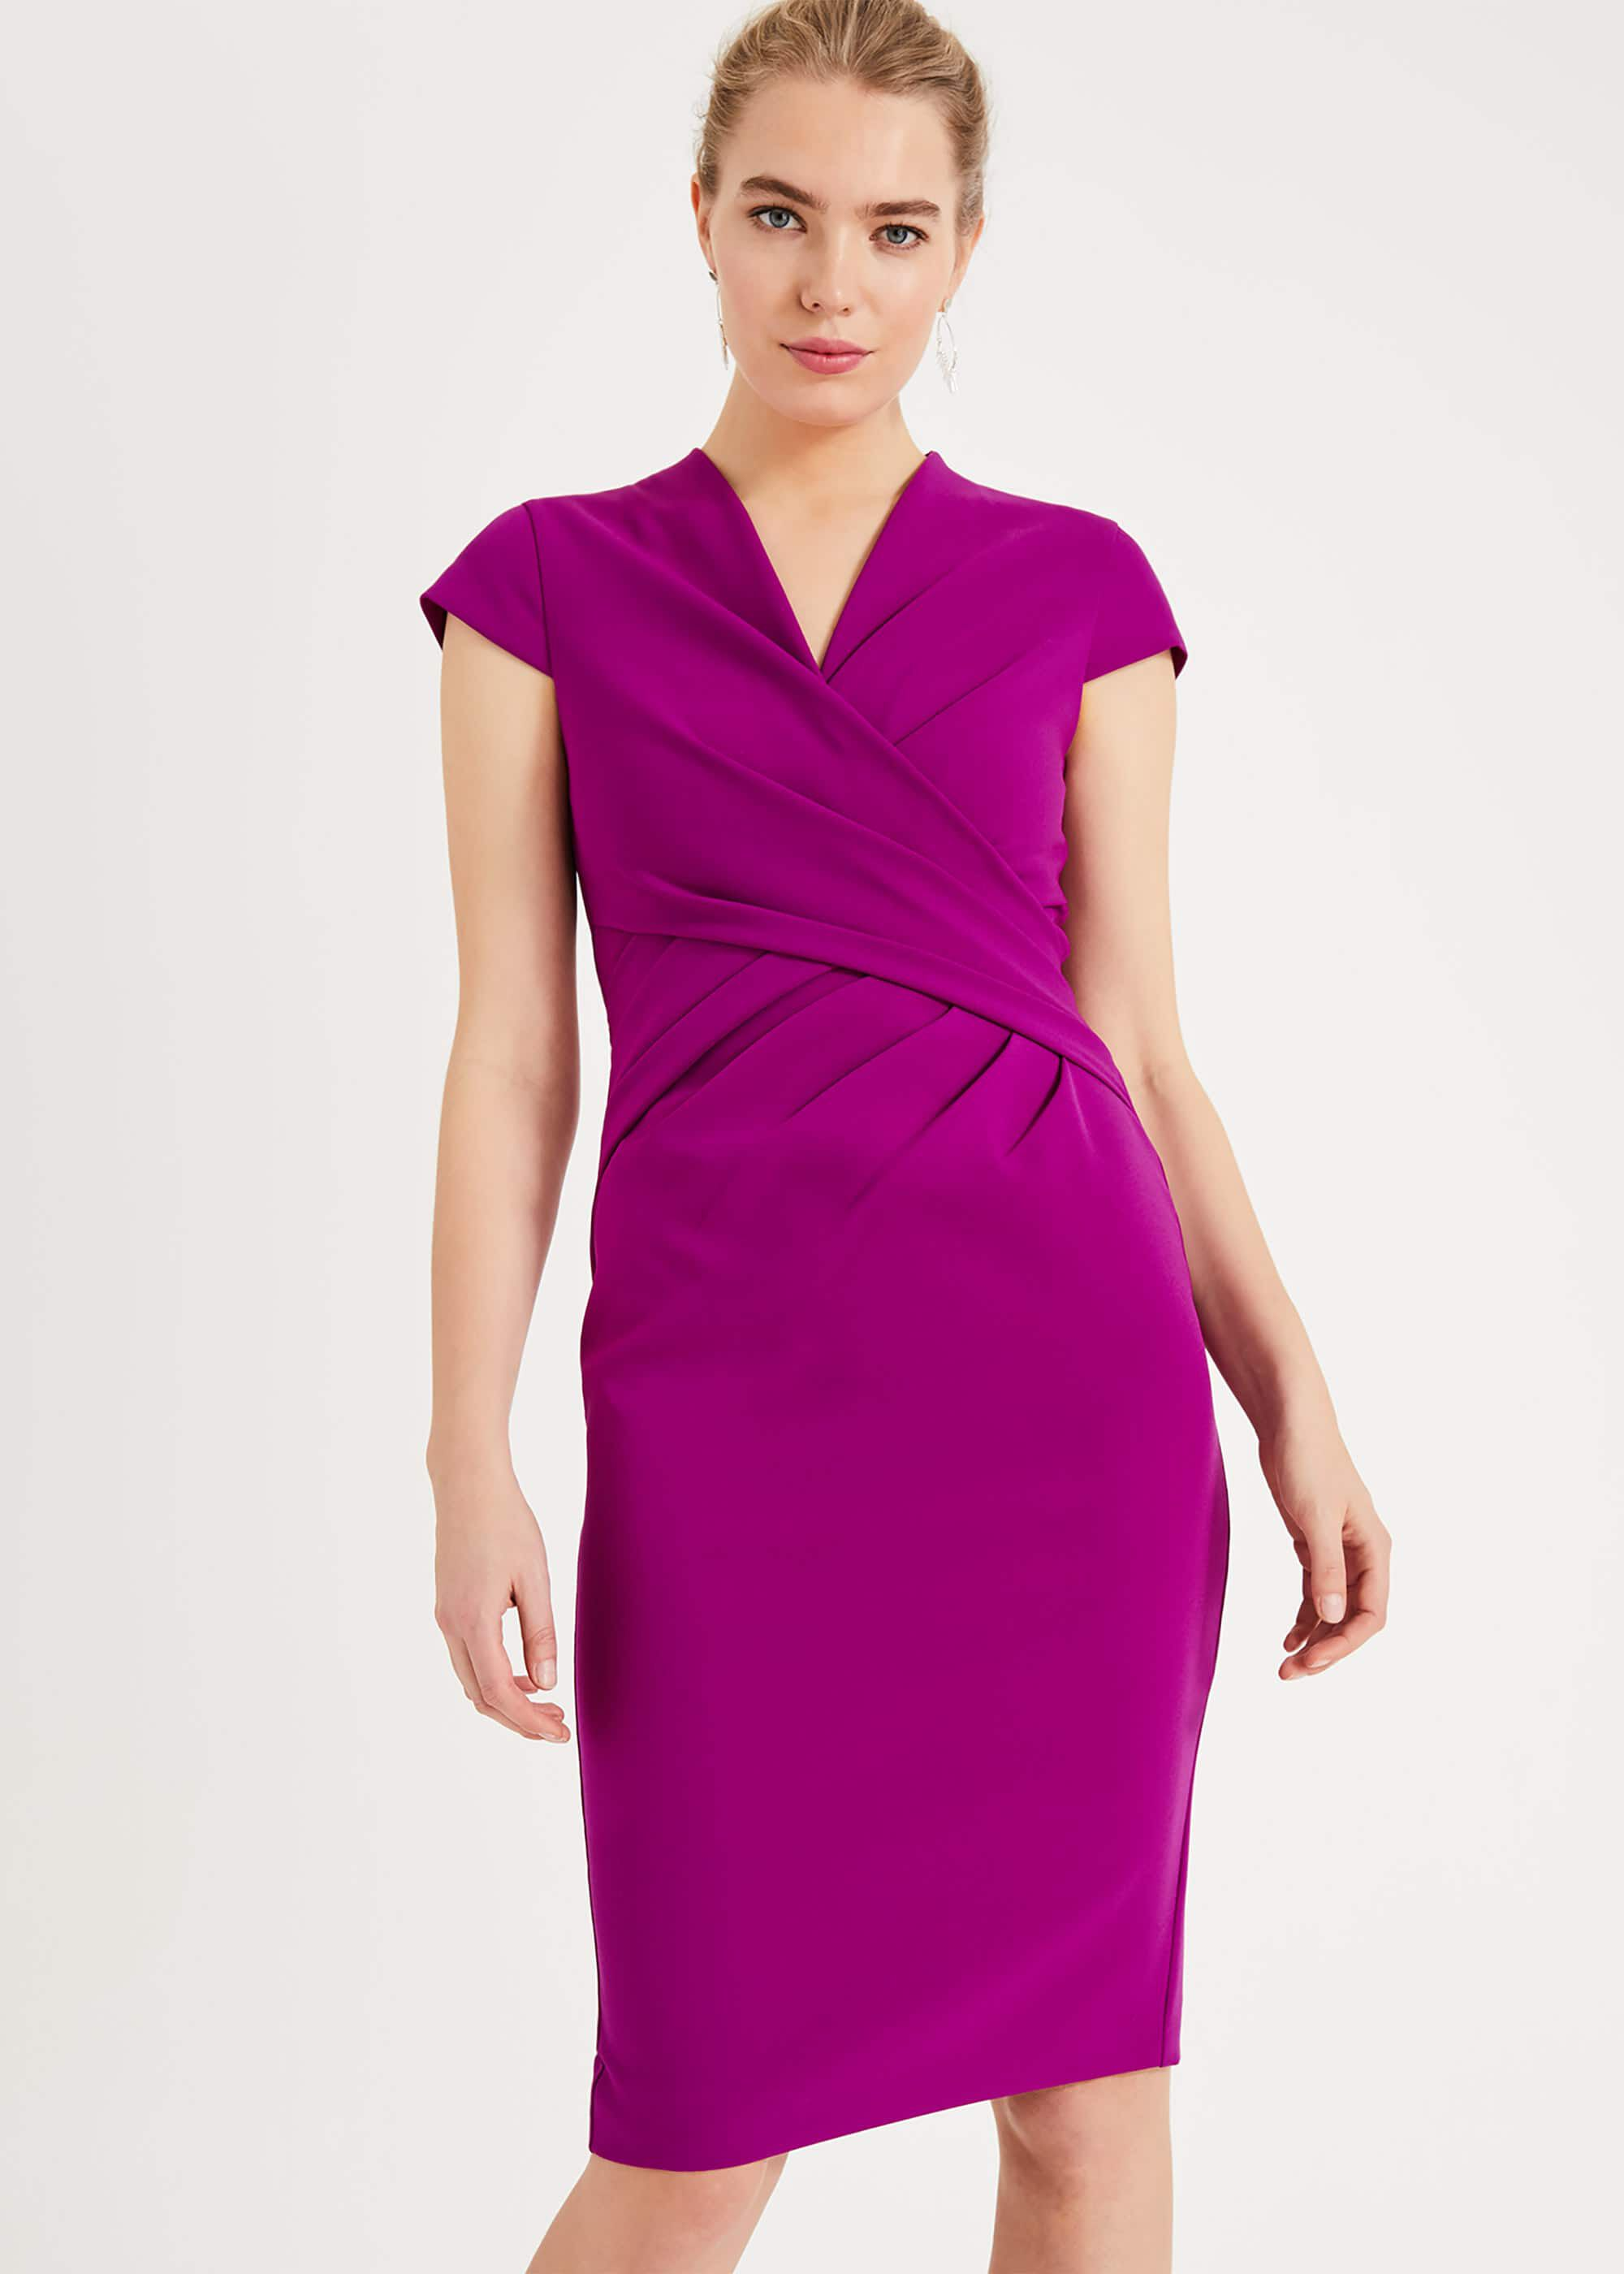 Phase Eight Rosetta Ruched Dress, Purple, Shift, Occasion Dress